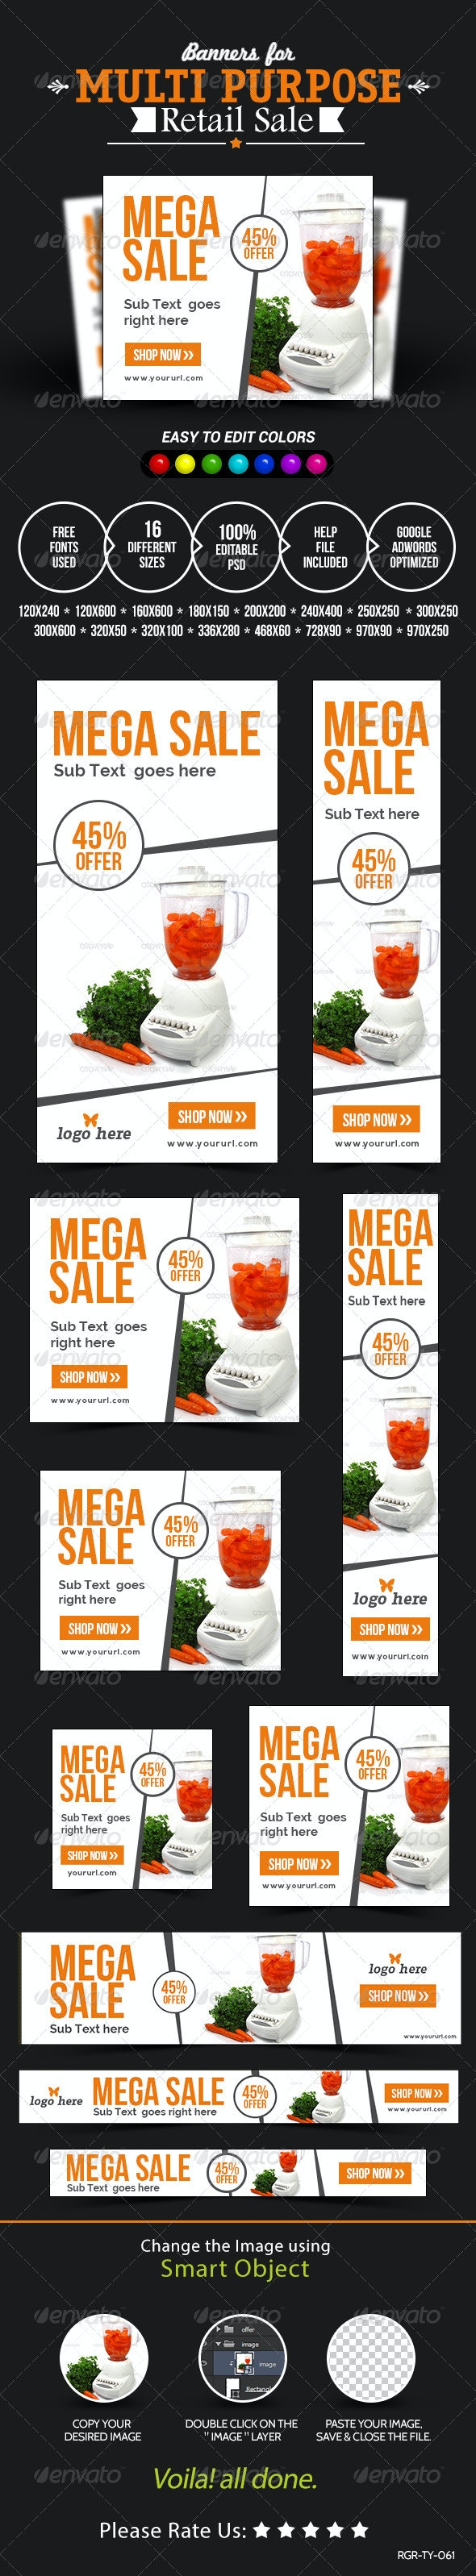 Retail Sale Banners - Banners & Ads Web Elements